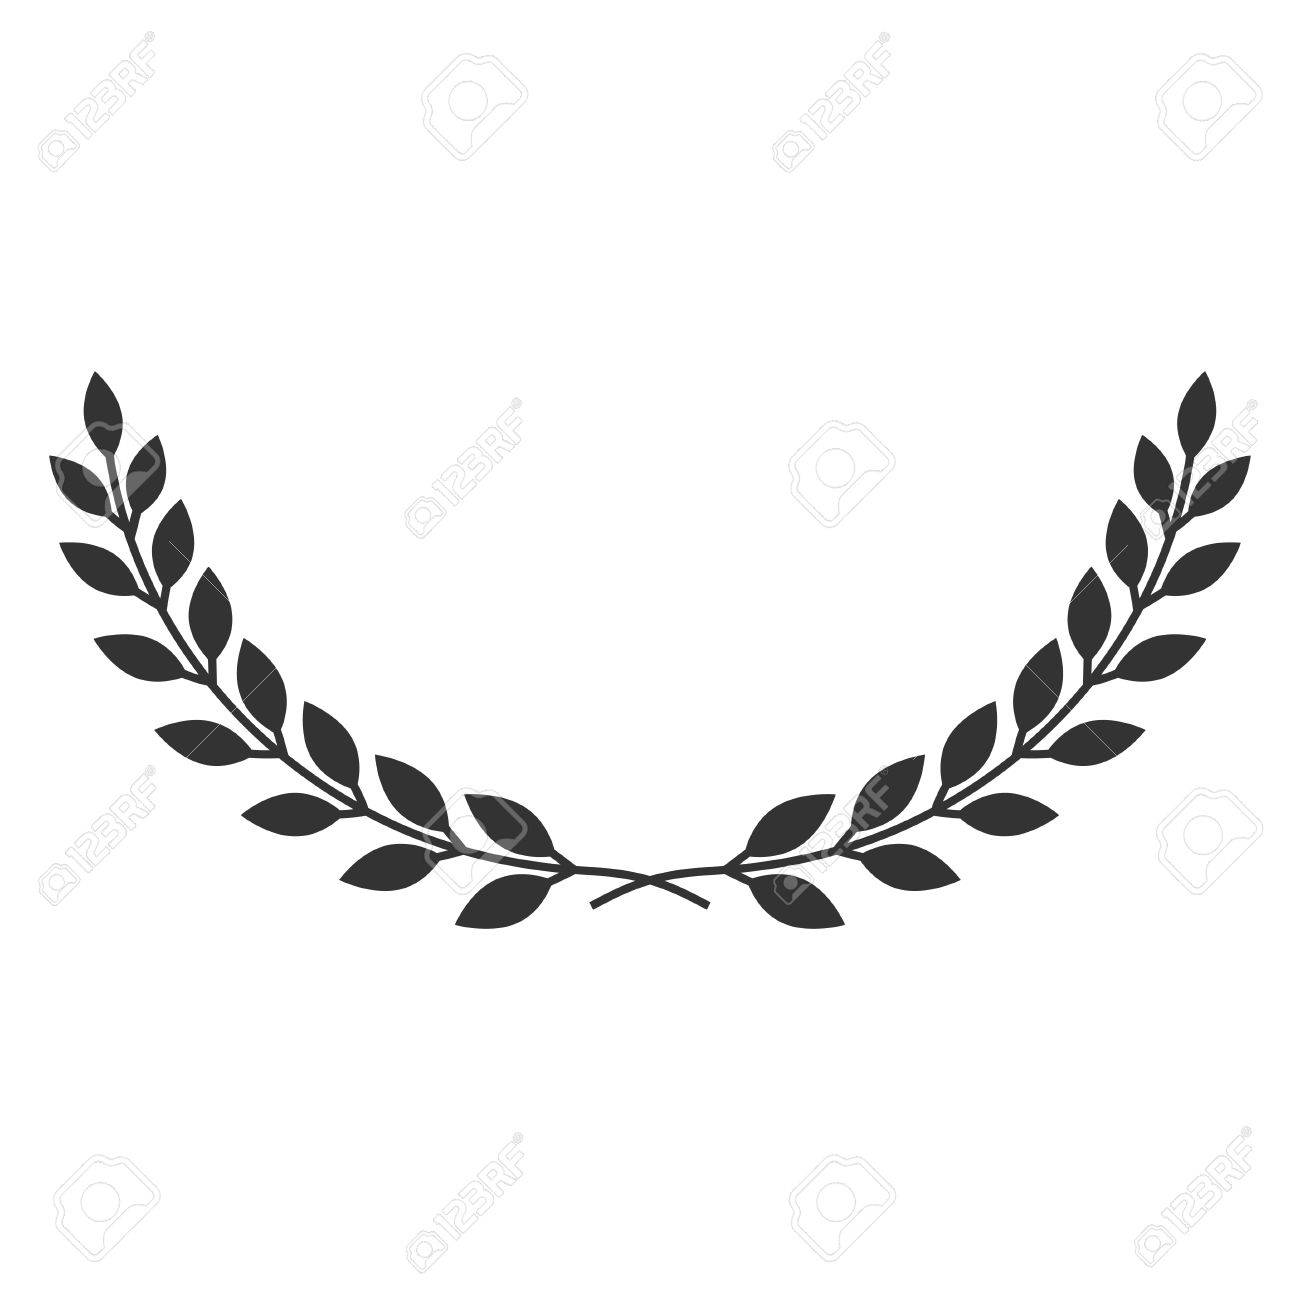 half wreath svg #971, Download drawings